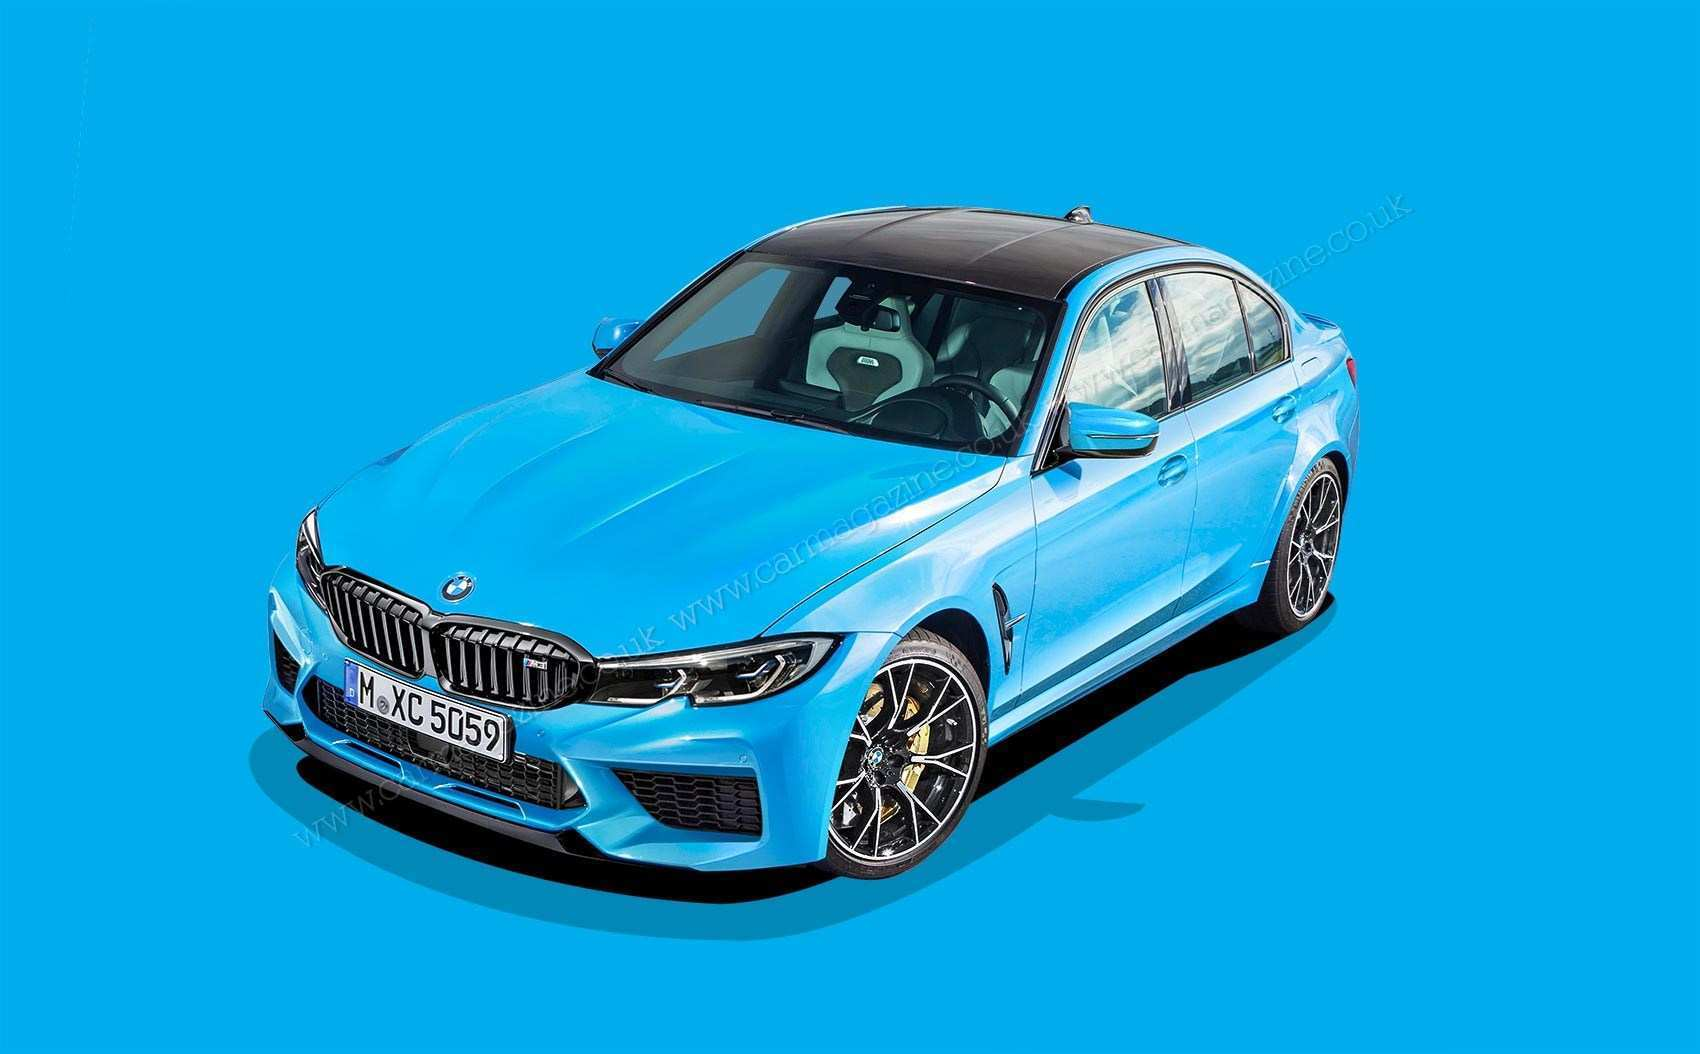 86 All New Bmw Of 2020 History with Bmw Of 2020